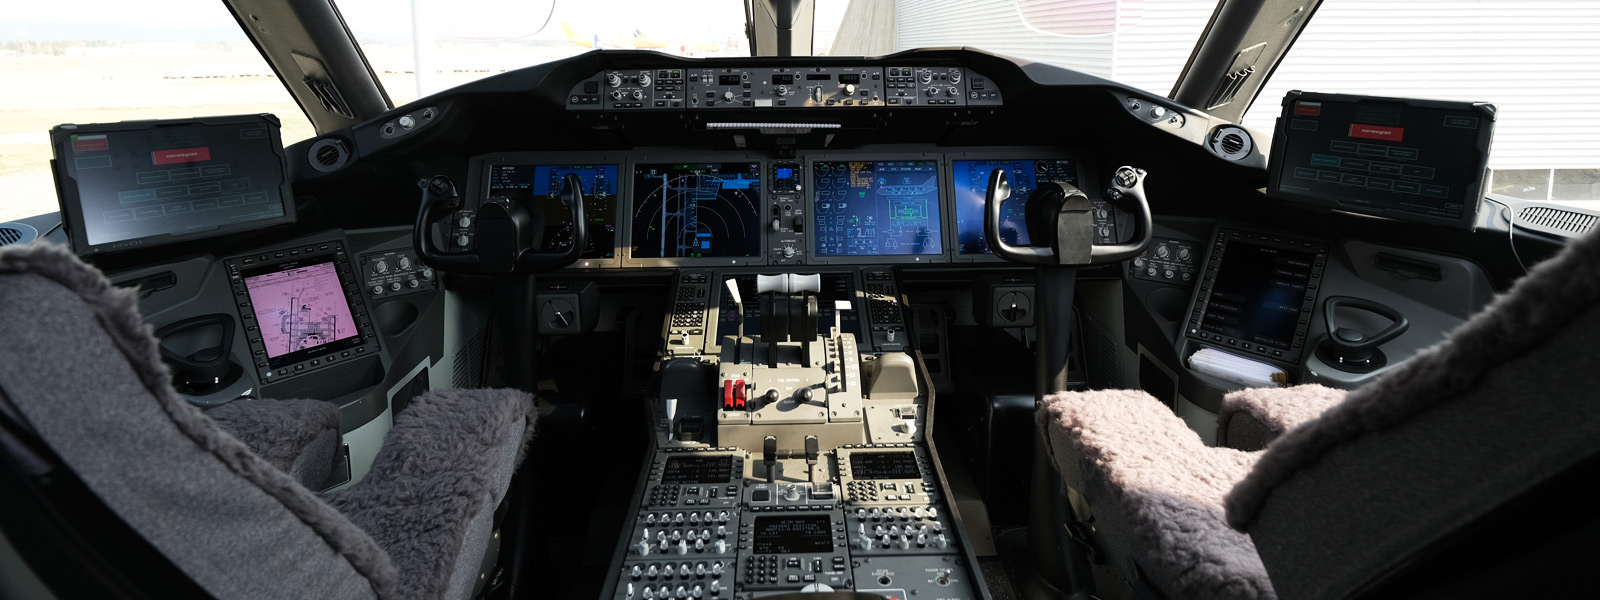 The cockpit of a Norwegian Airlines airplane